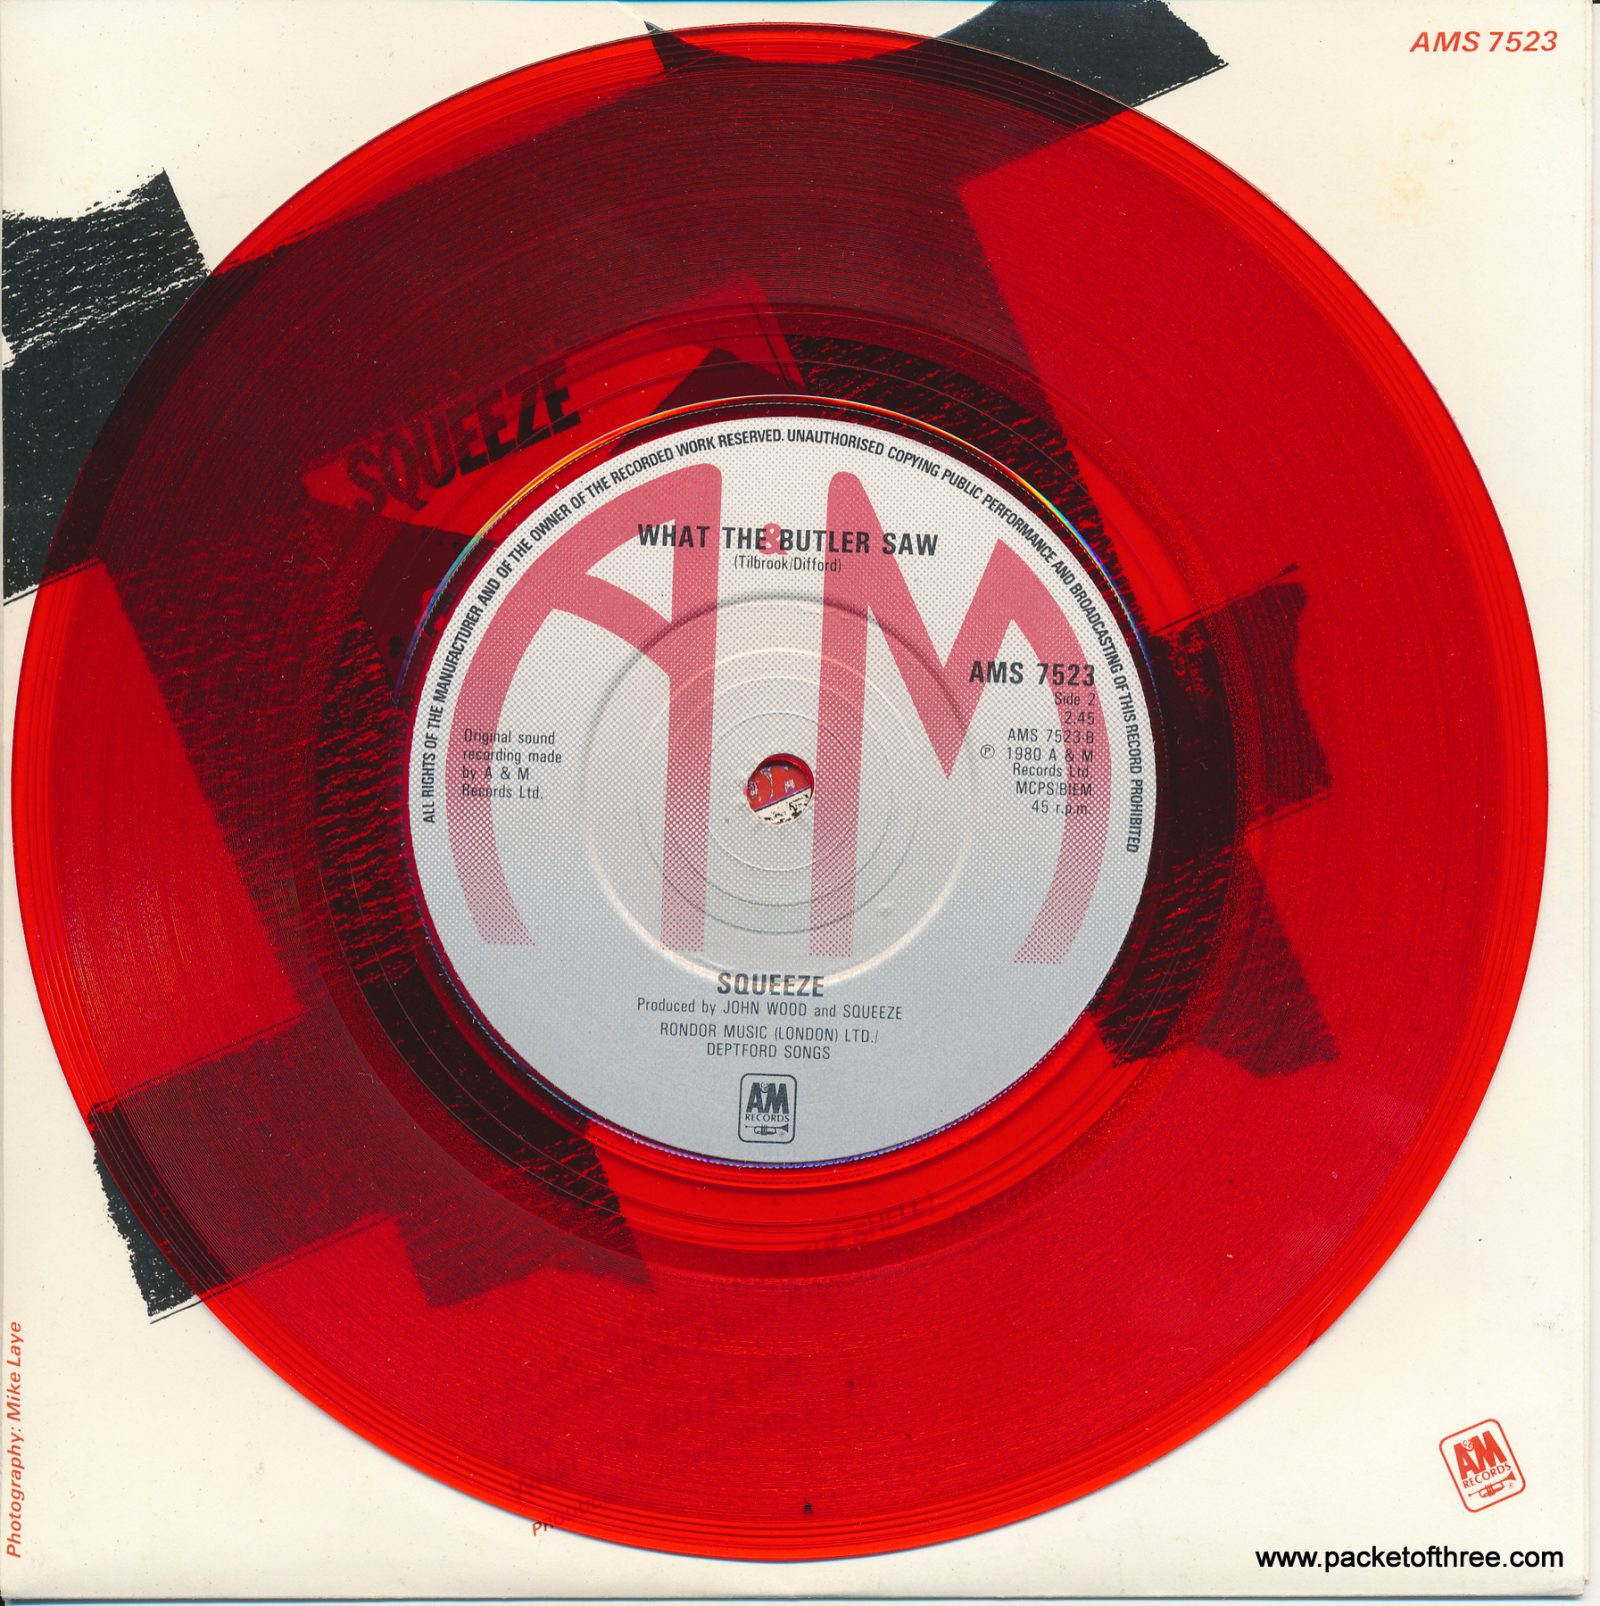 "Pulling Mussels (From the Shell) - UK - 7"" - picture sleeve - red vinyl"